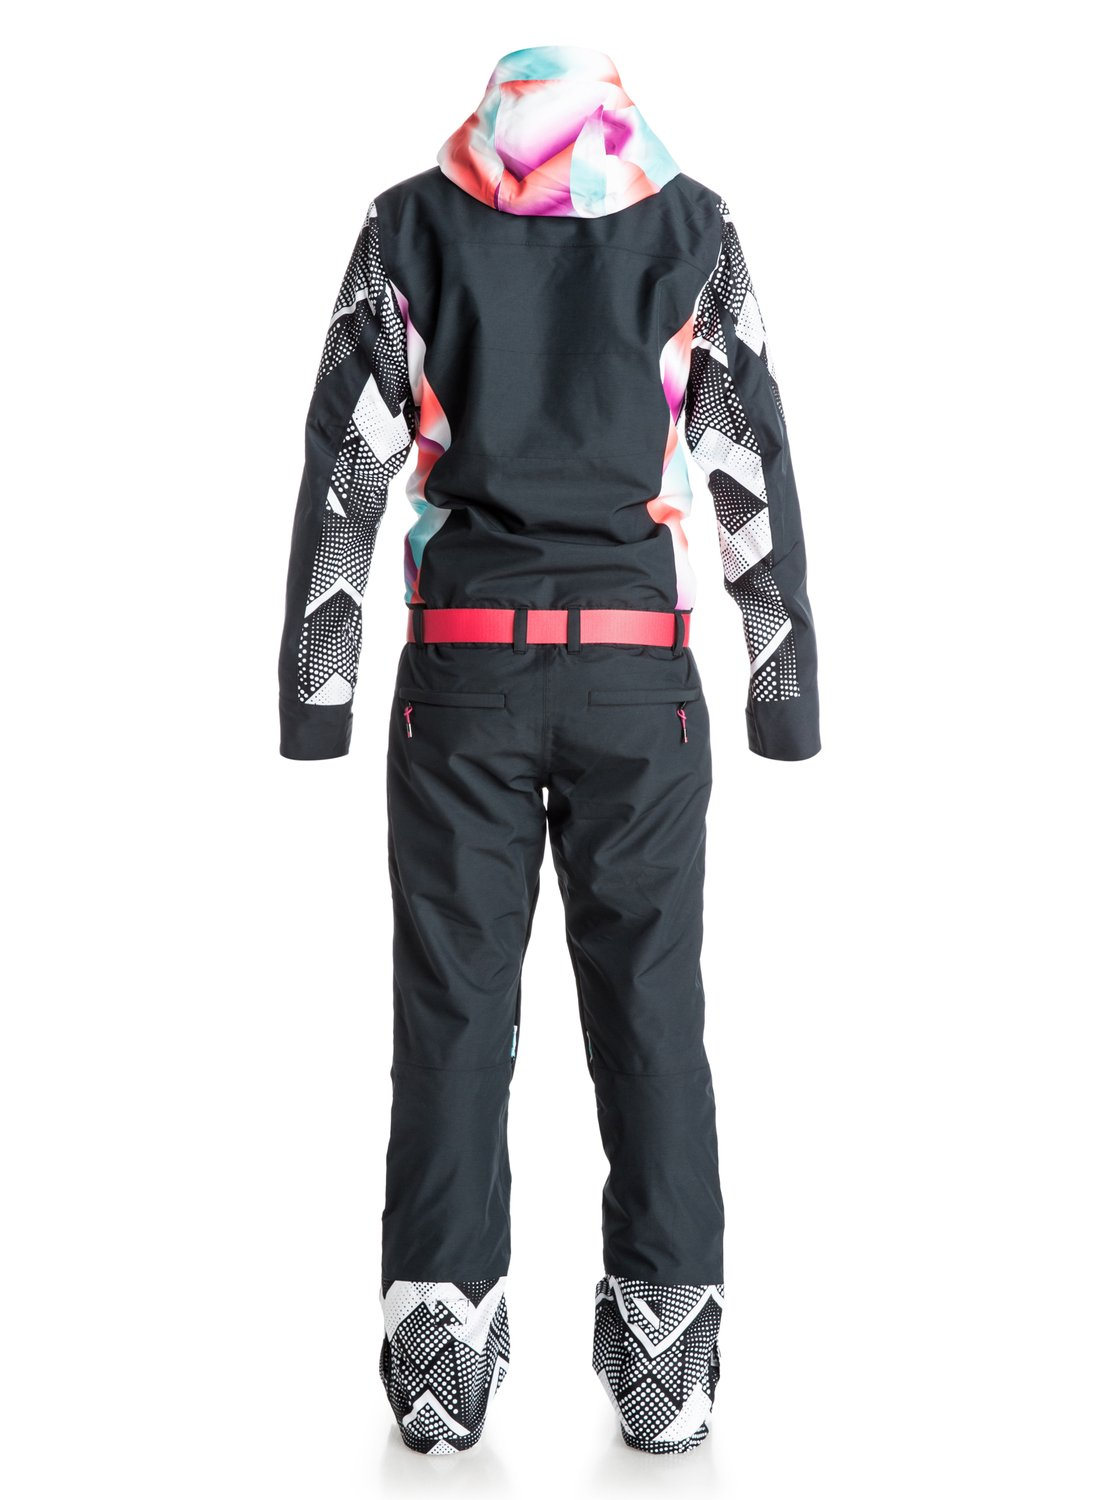 Roxy Rose Little Miss Snowsuit - Infant Girls' $ Outlet: $ Sale View Selections Compare Please select at least one more item to compare. Roxy Paradise One-Piece Suit - Little Girls' $ $ Limited Time.